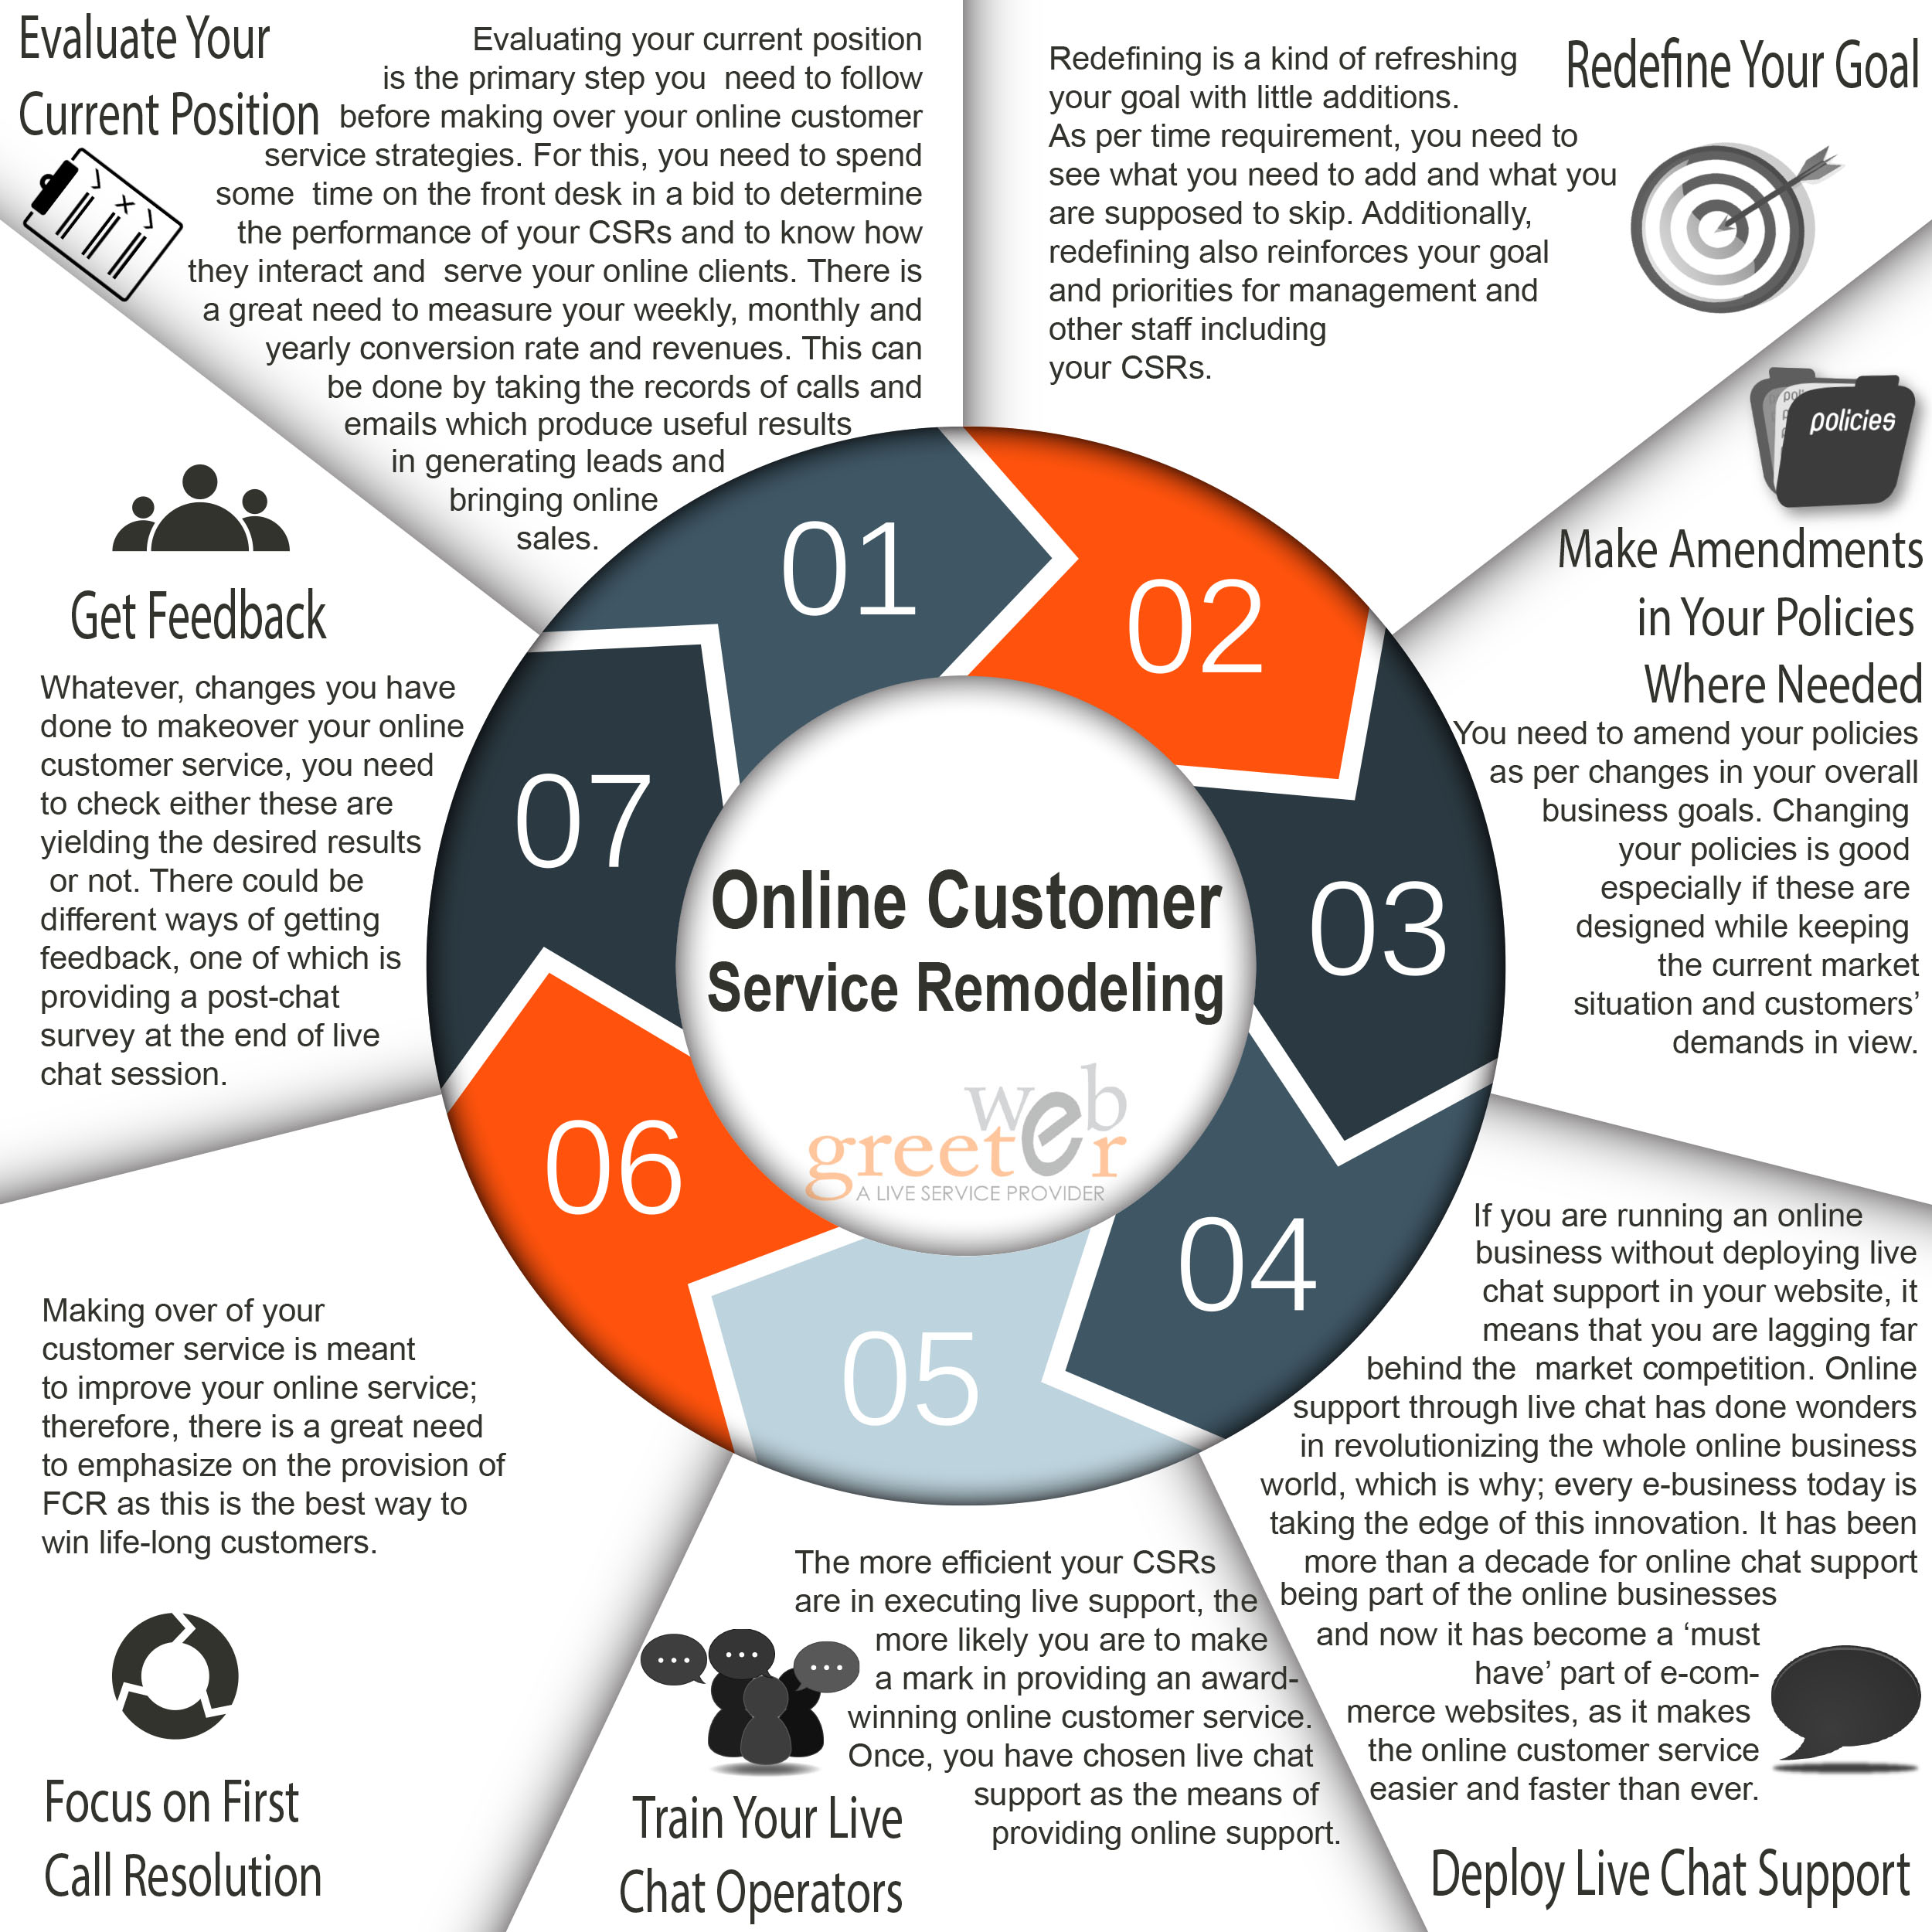 Online Customer Service Remodeling - Seven Steps to Follow - Image 1